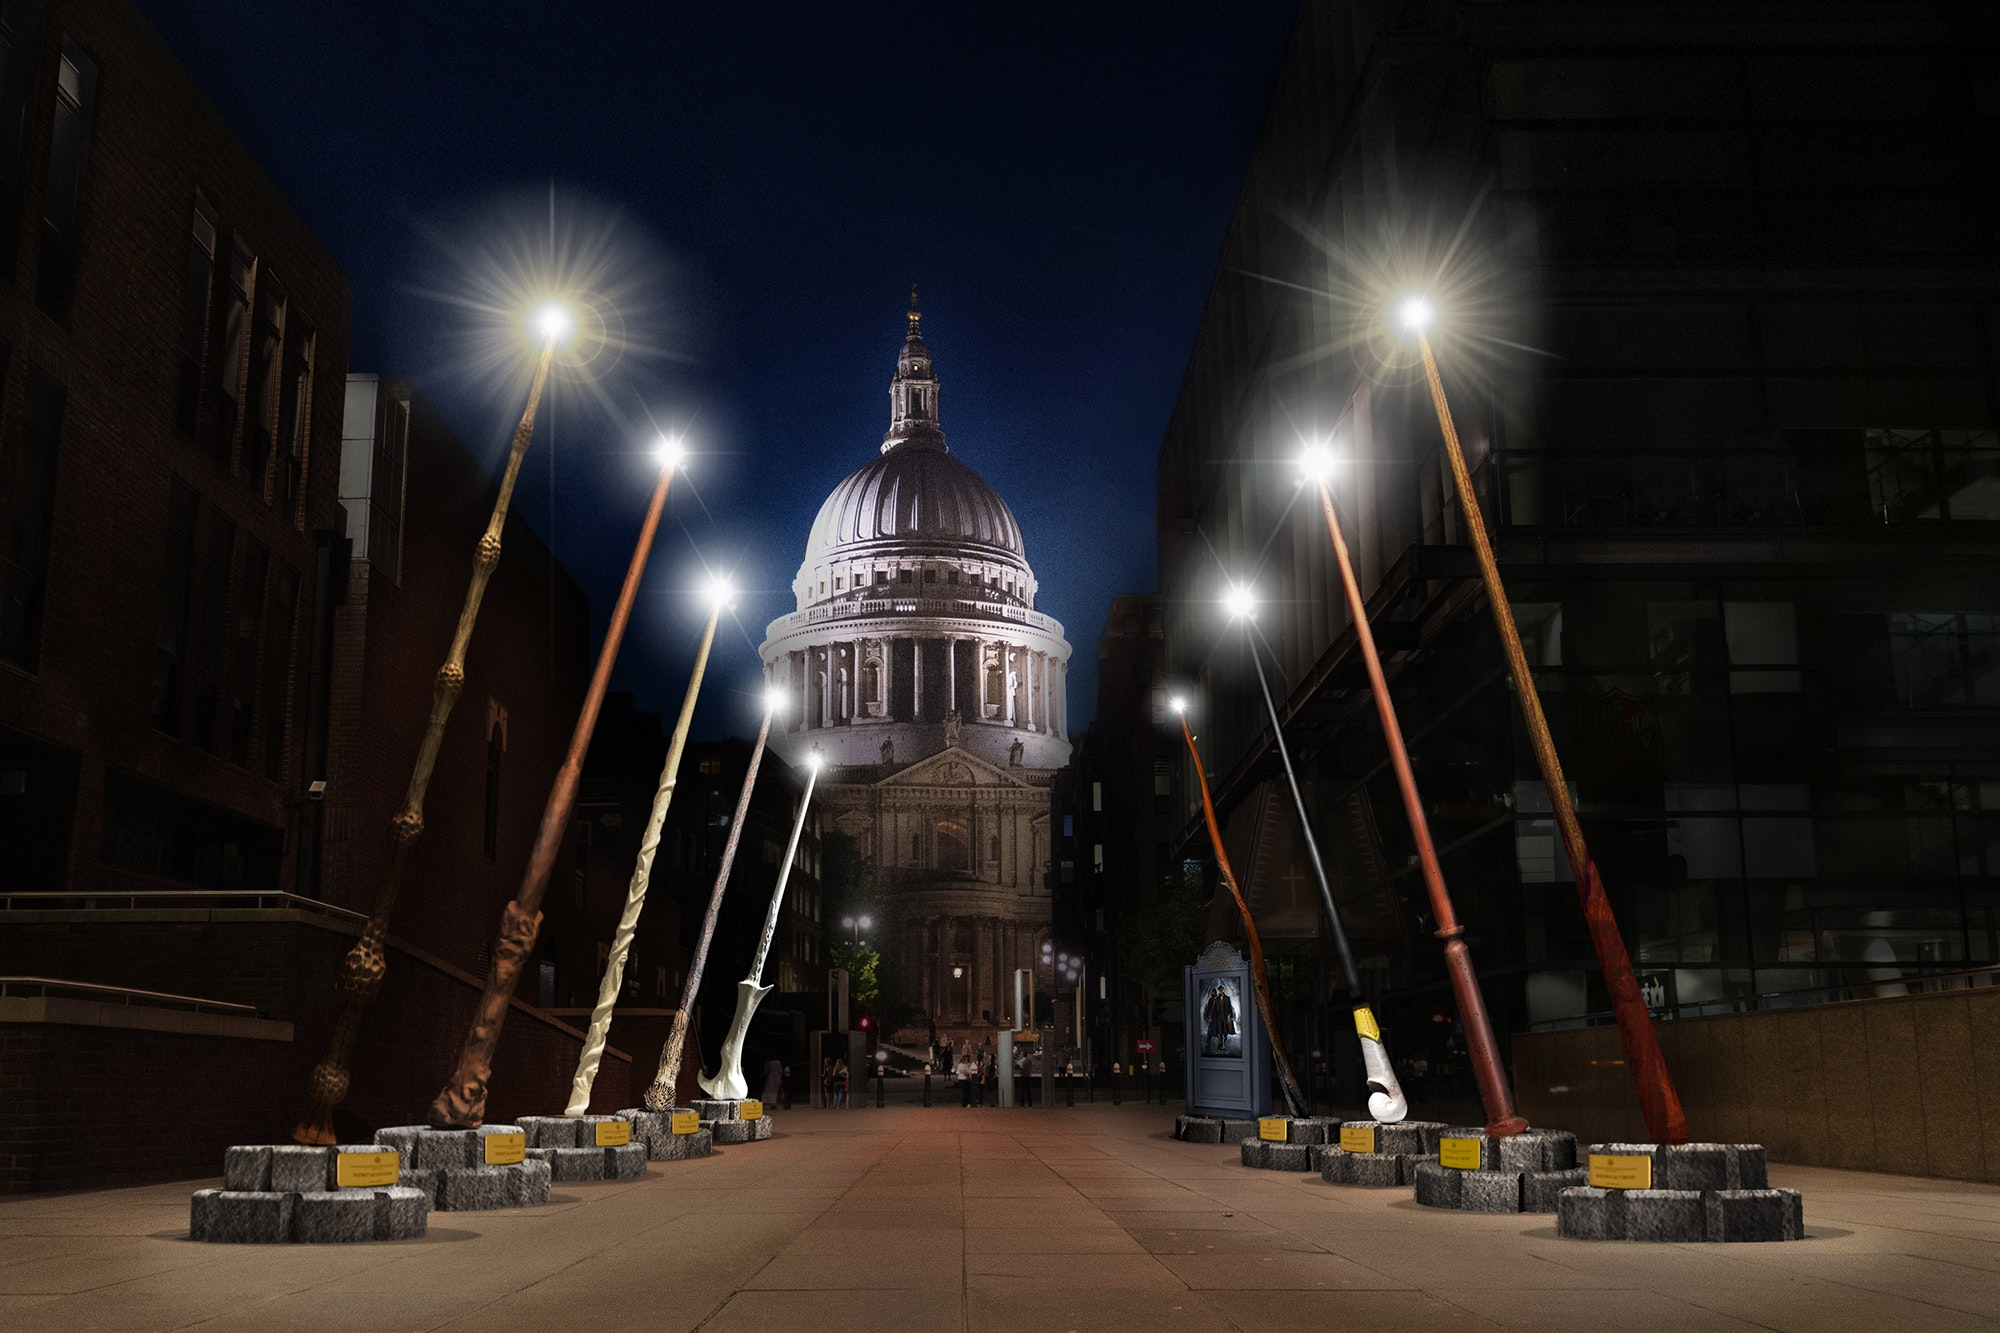 London's latest public art installation will delight Harry Potter fans.